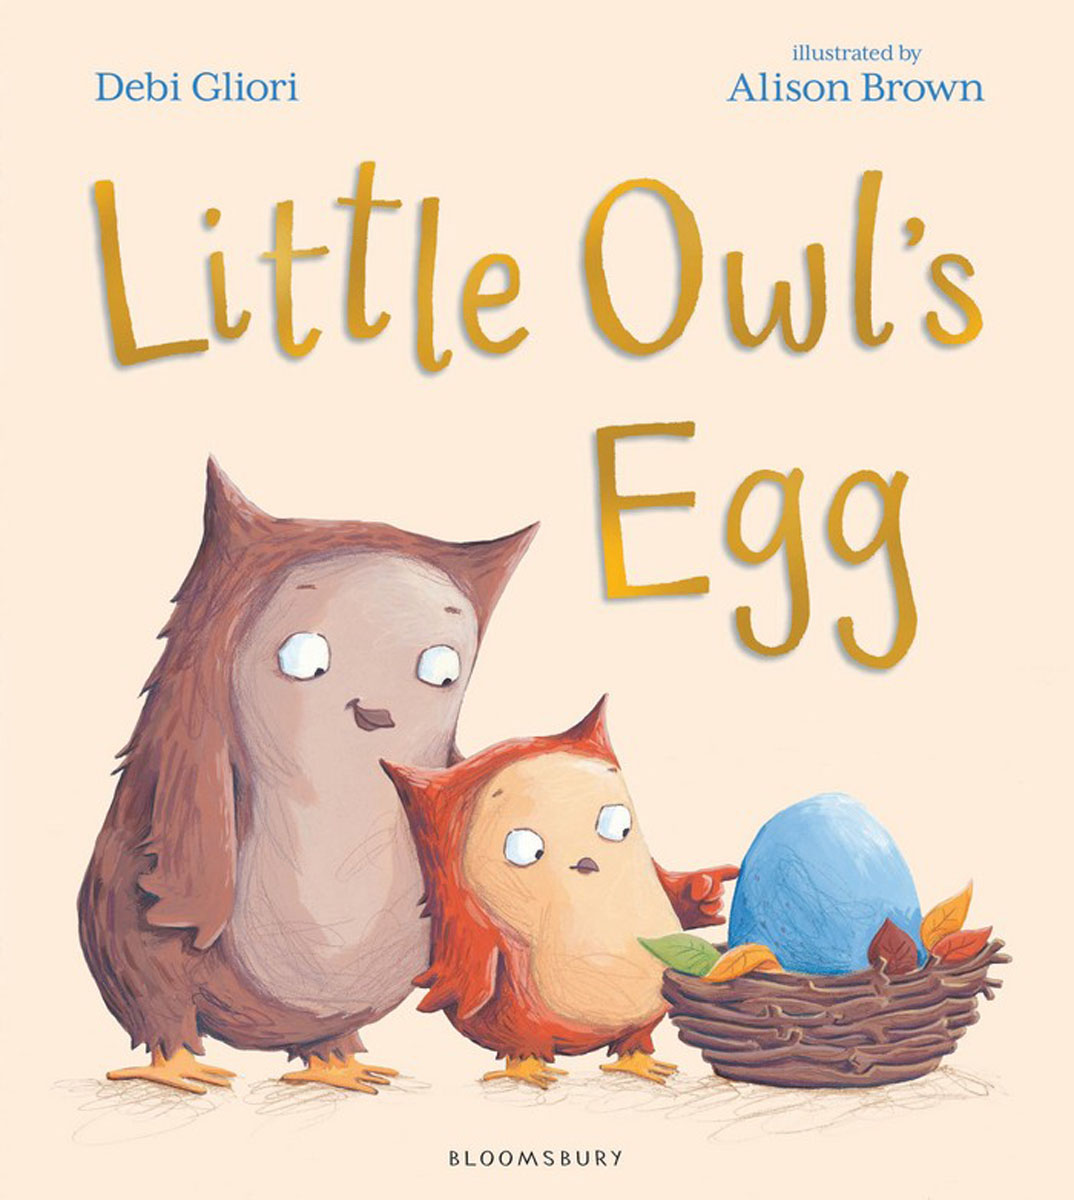 Little Owl's Egg nina stefanovich tale about littleworm book for kids